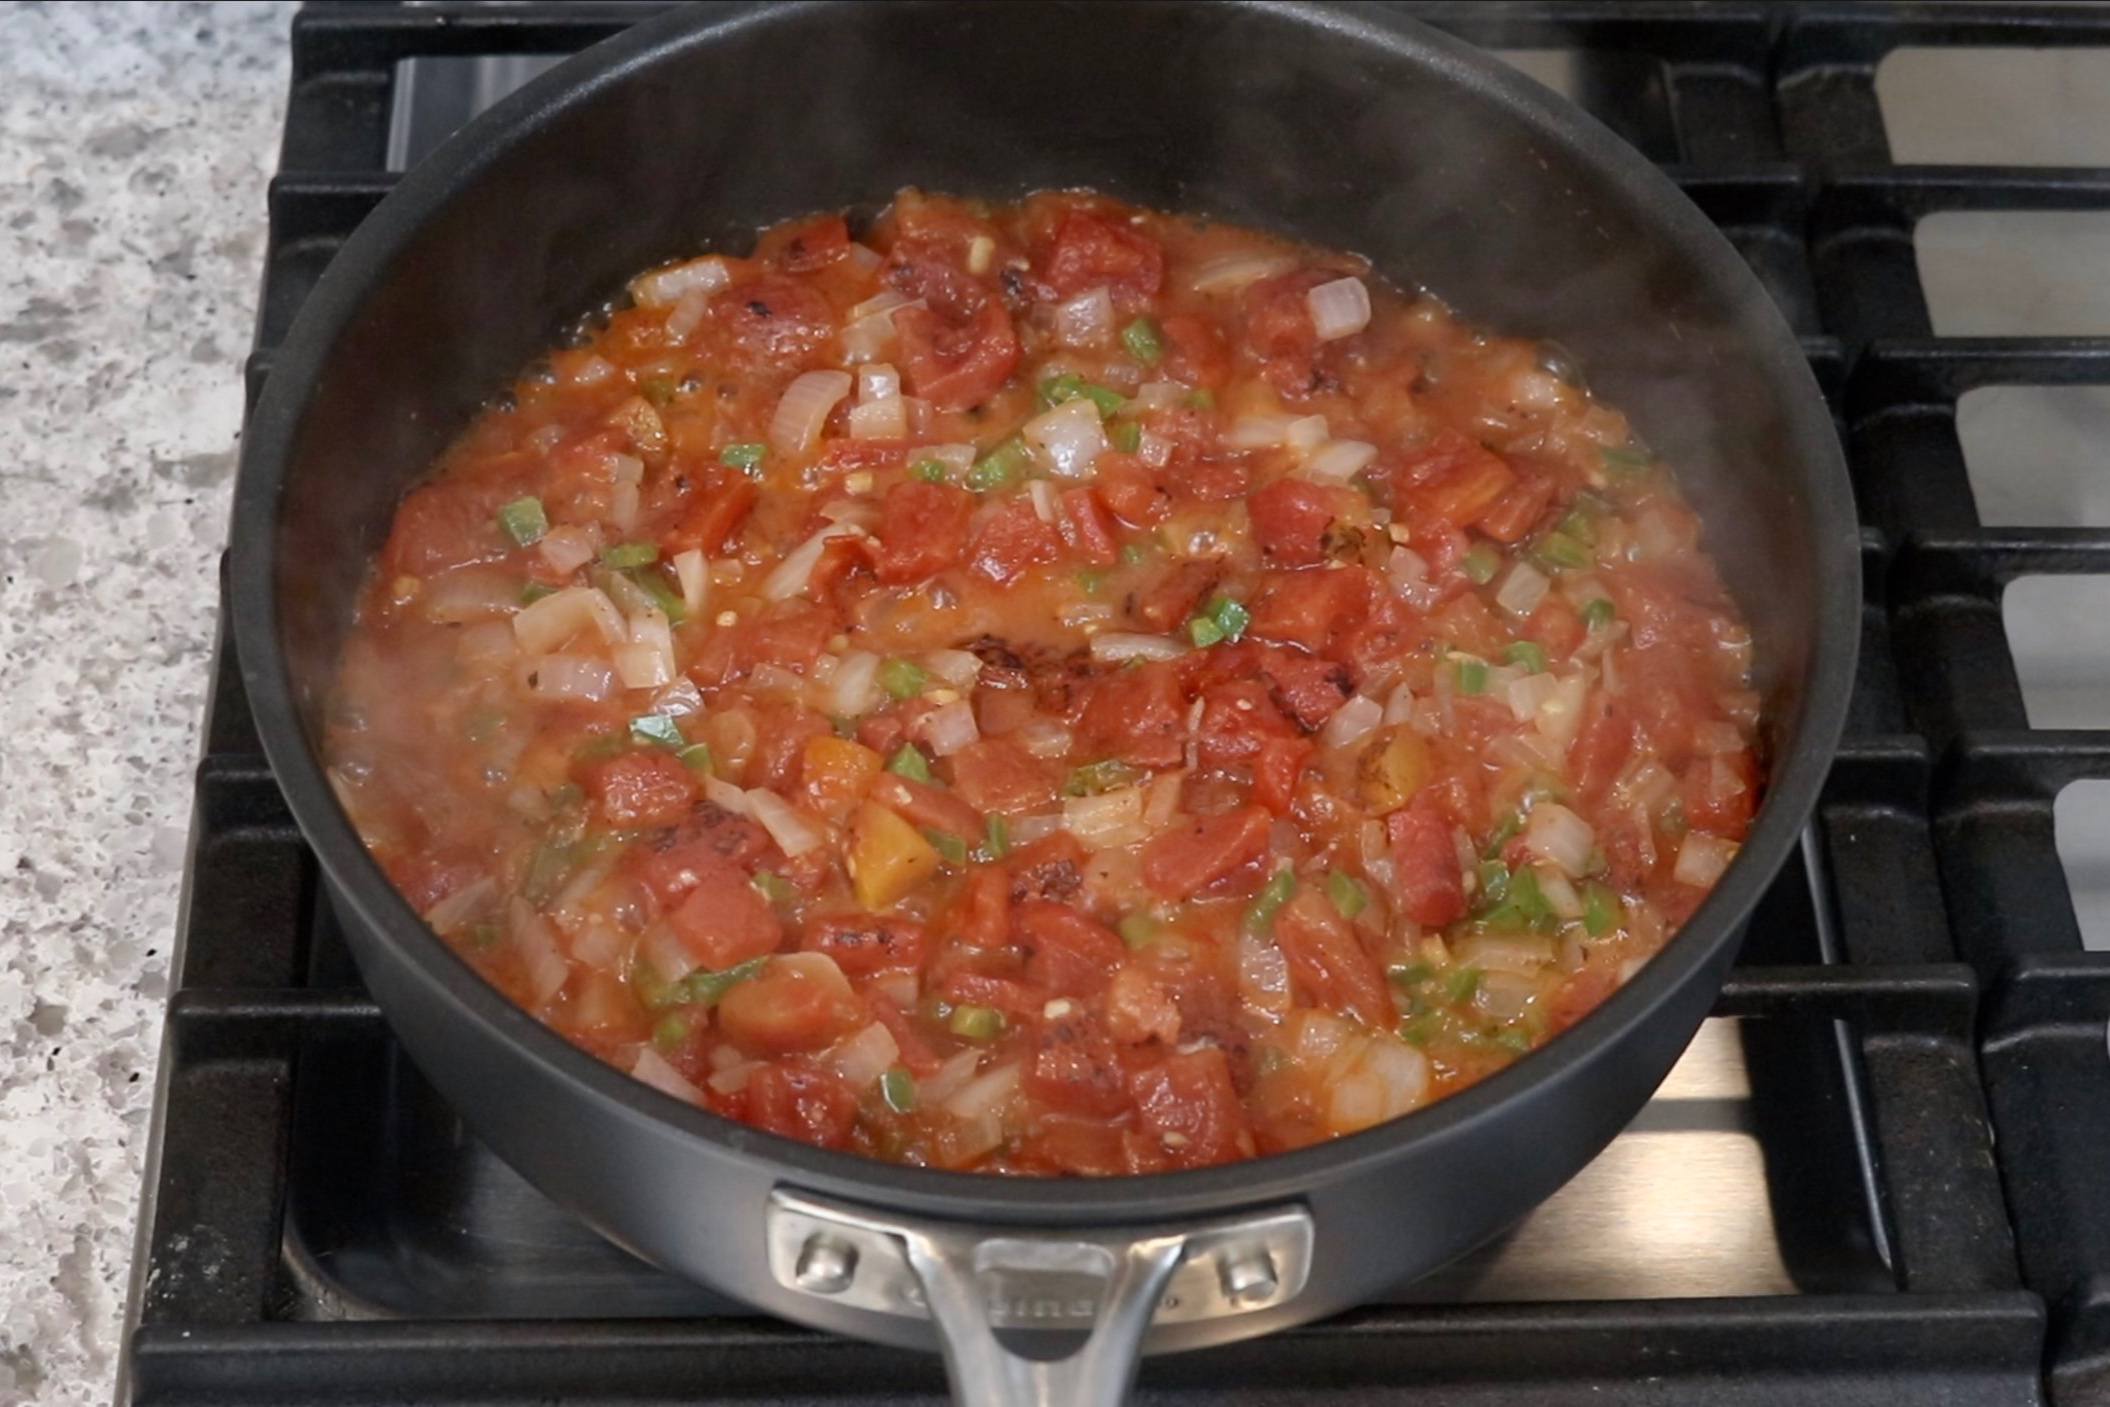 3. Stir in the tomatoes and cook for 3-4 minutes. -